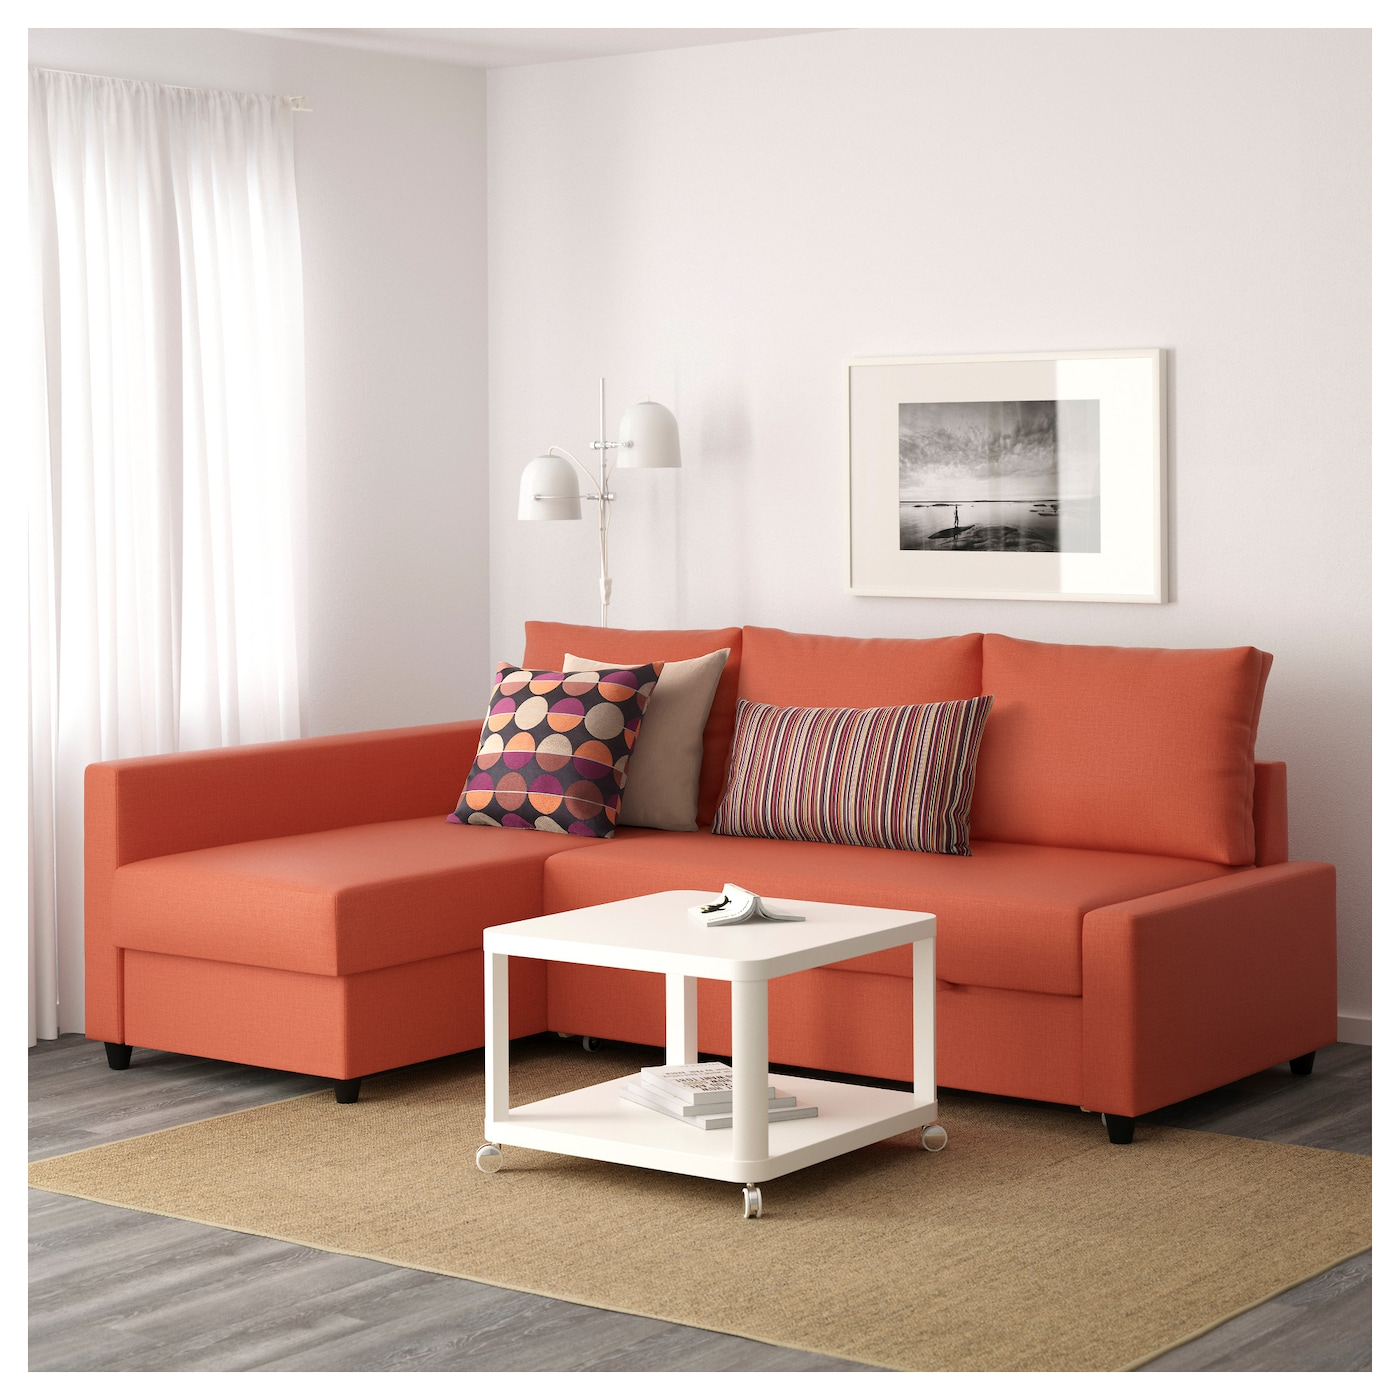 Friheten corner sofa bed with storage skiftebo dark orange for Ikea divano friheten